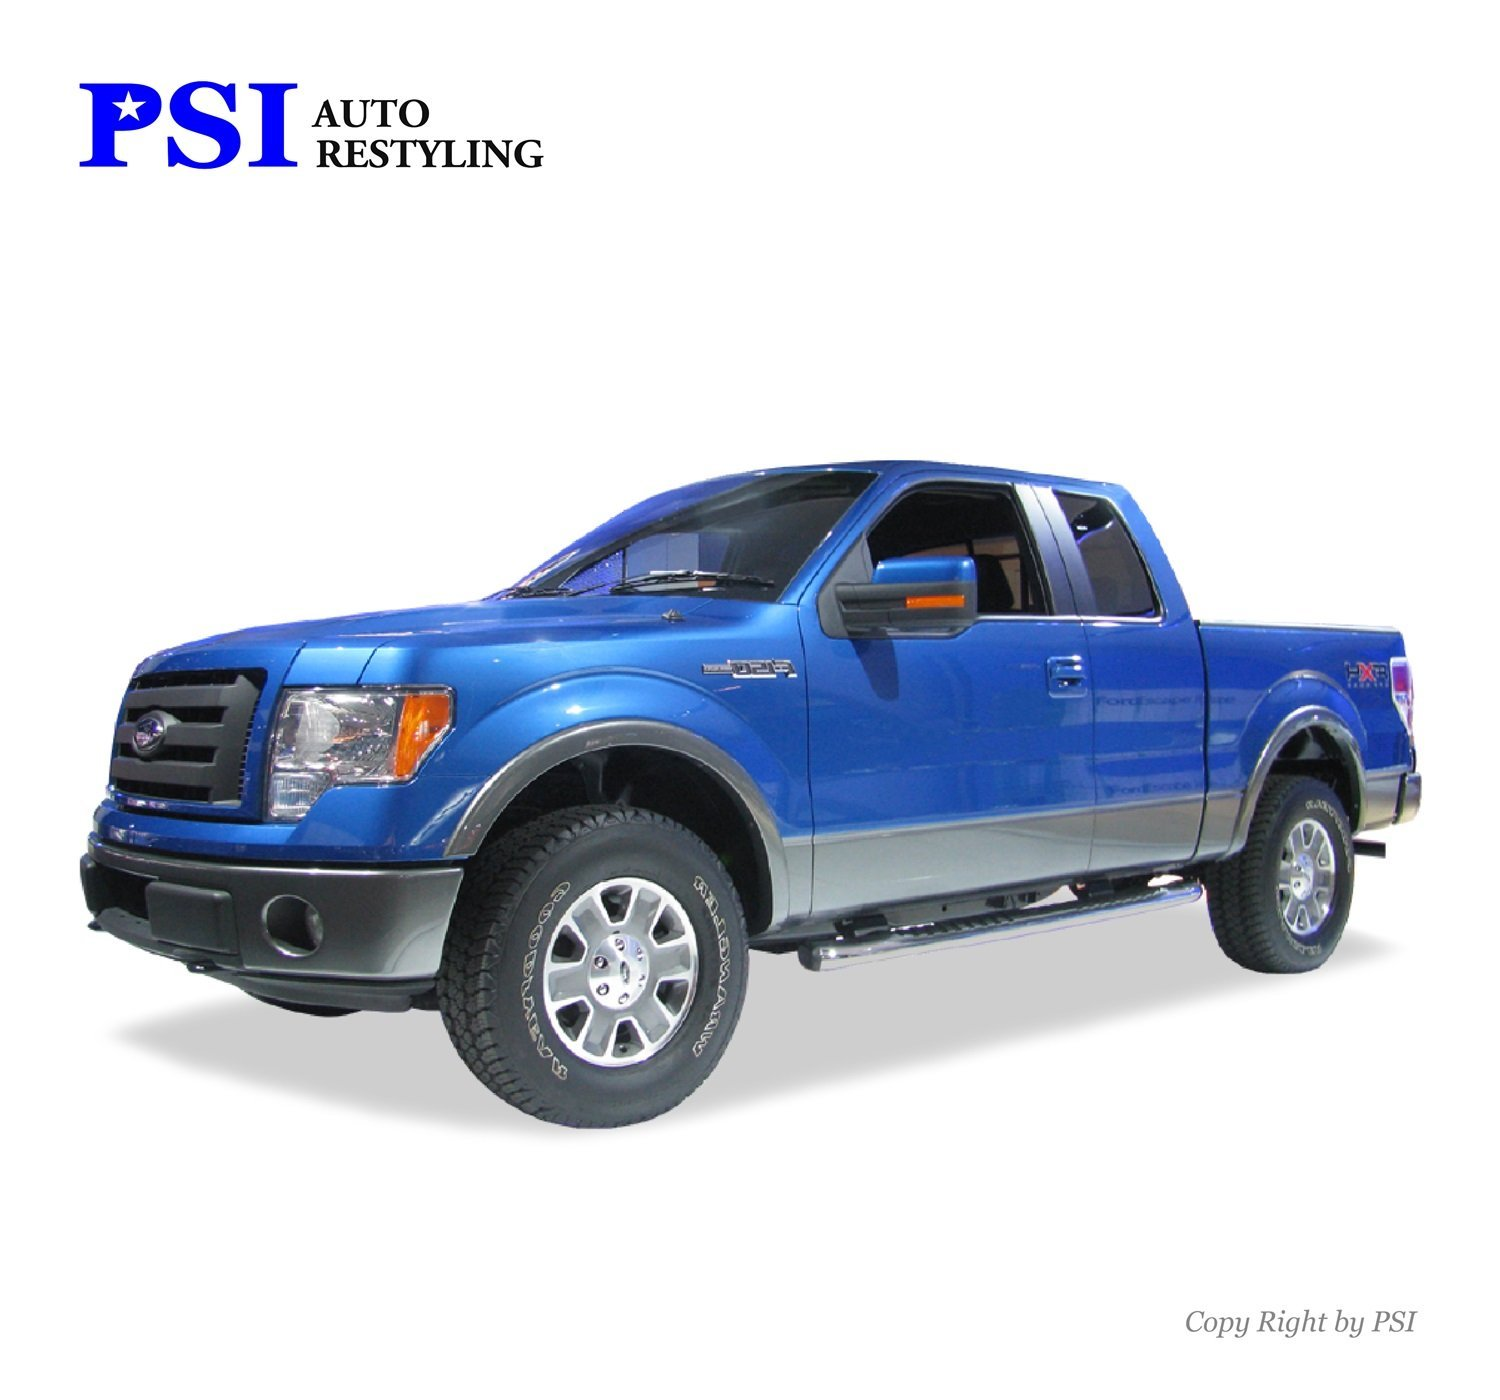 PSI Auto Restyling 801-0313 Rugged Style Fender Flares; Front and Rear; Flare Width 4 in; Tire Coverage 2.5 in; Smooth Black